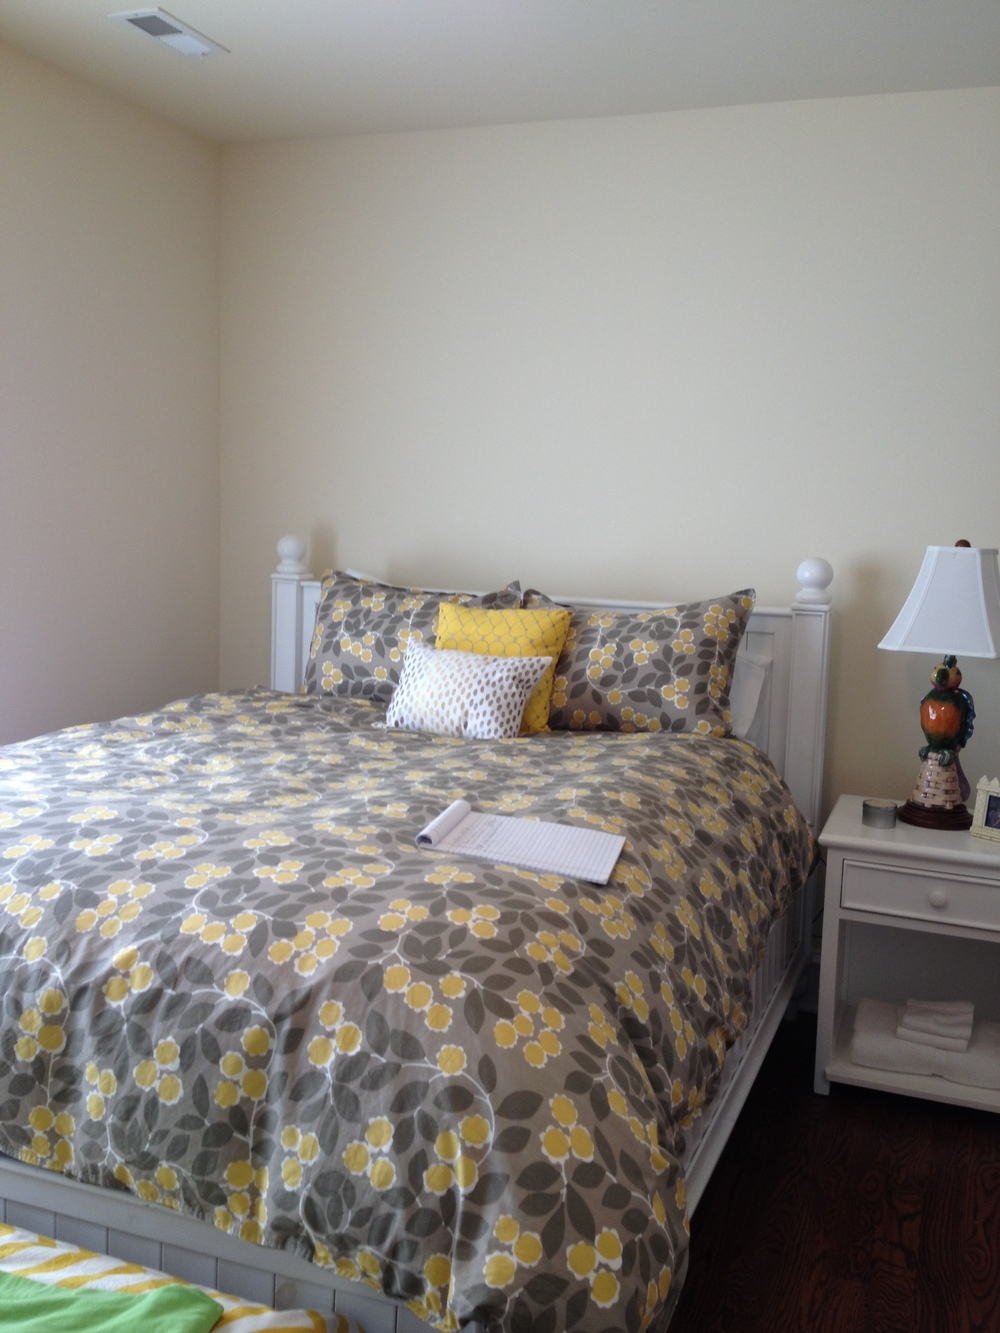 photo.JPGsparegreybedroom - Copy - Copy.jpg